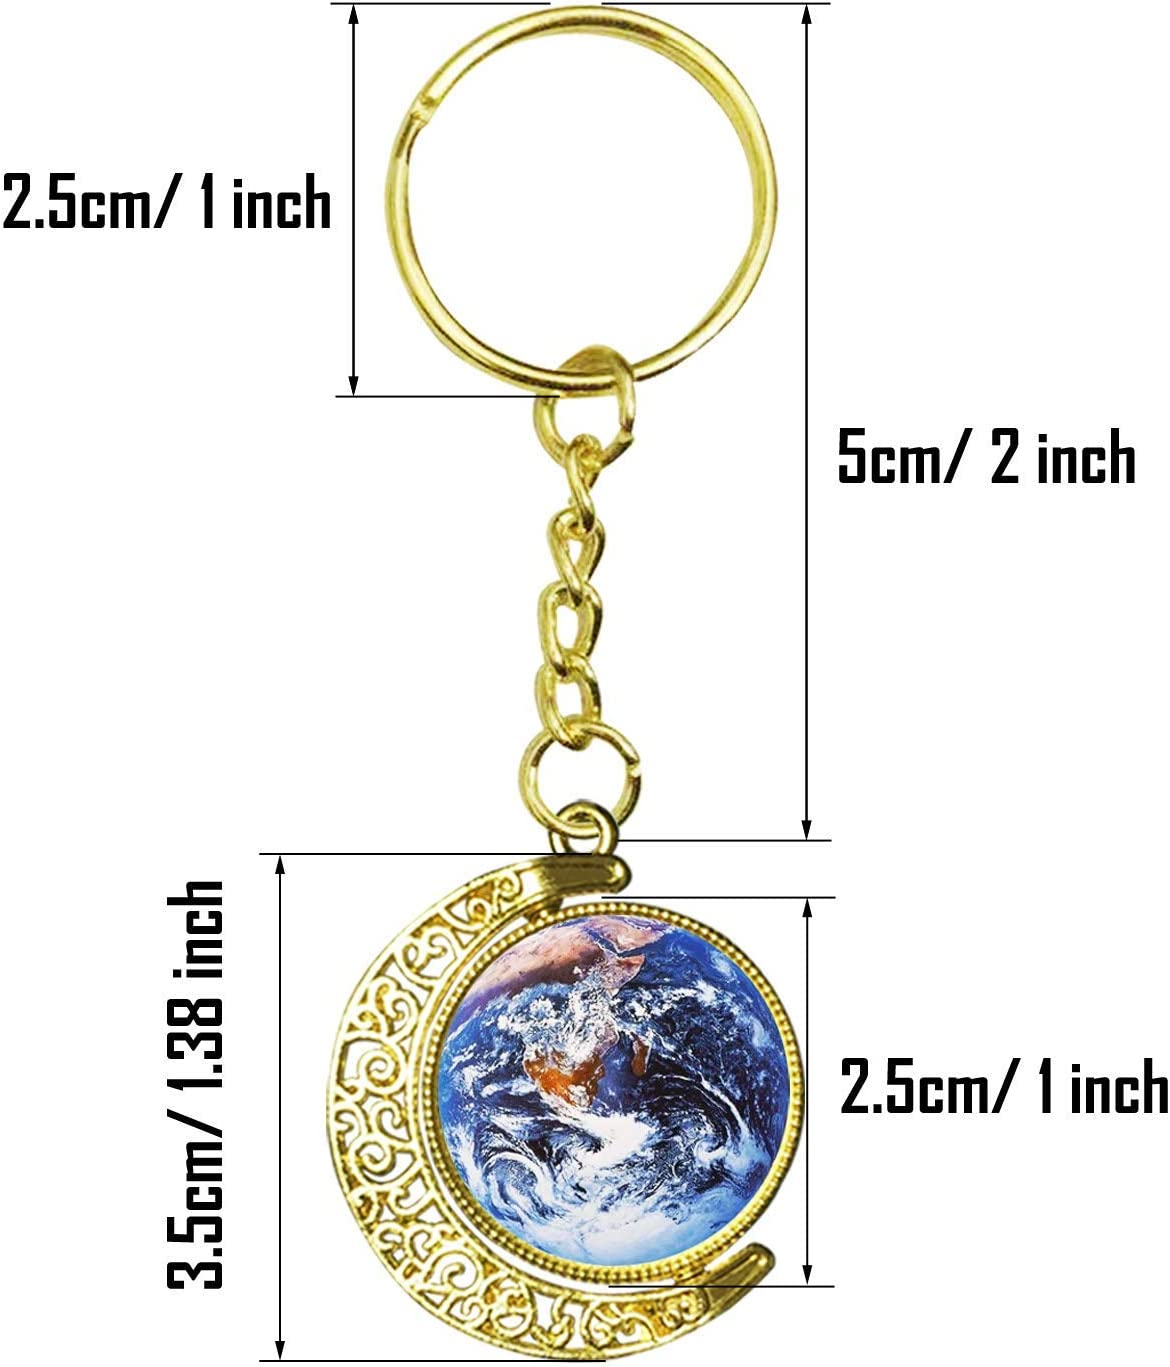 36 PCS Pendant Trays Kit 18 PCS Glass Dome Tiles Clear Cameo and Pendant Buckle for Jewelry Making Allazone 25 MM 9 PCS Moon Rotation Double Side Round Blank Bezel Pendant Trays